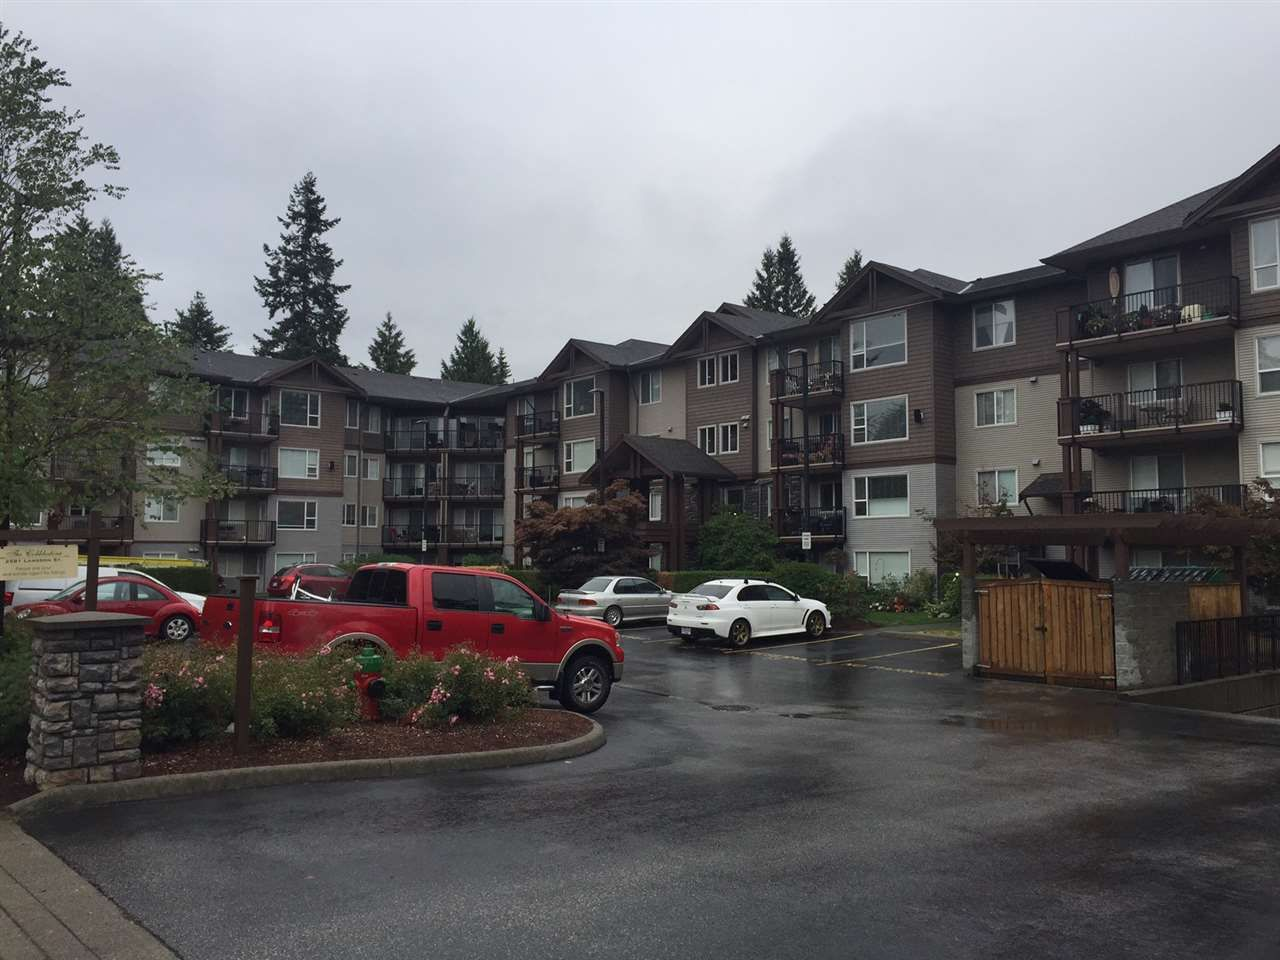 Main Photo: 113 2581 LANGDON STREET in Abbotsford: Abbotsford West Condo for sale : MLS®# R2207307